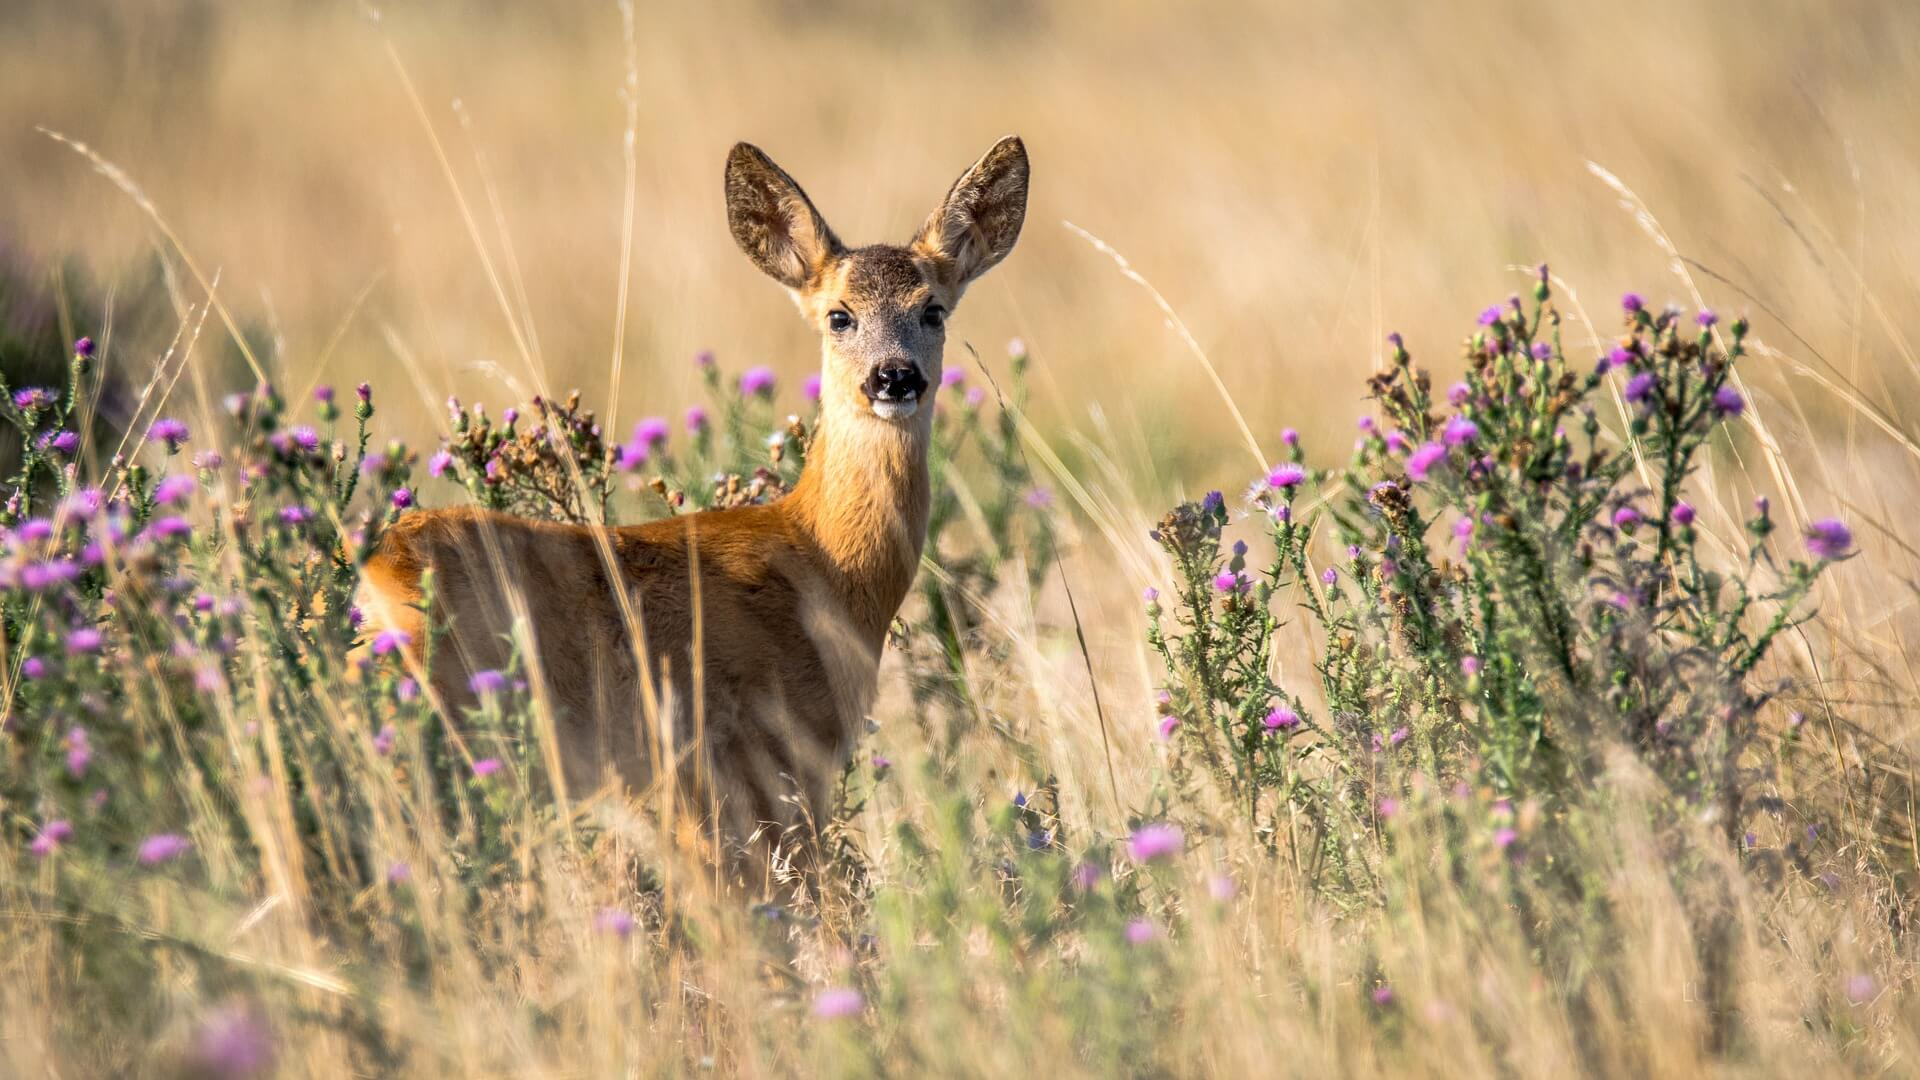 The Missouri Department of Conservation Reminds Hunters of New CWD Regulations for Cervid Carcasses